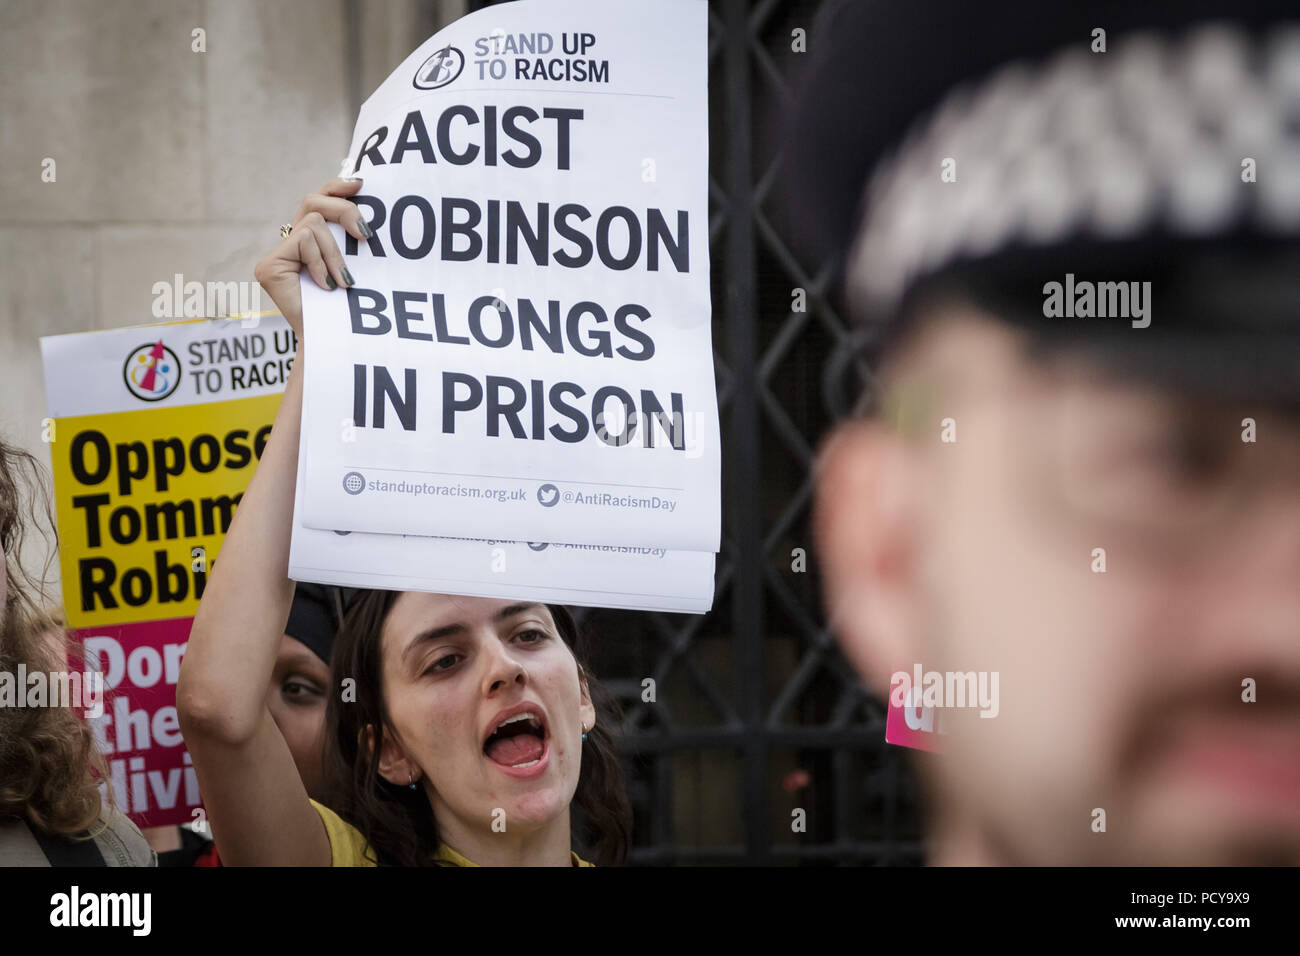 Stand Up To Racism demonstration counter-protest 'Free Tommy Robinson' supporters outside the Royal Courts of Justice in London, UK. - Stock Image